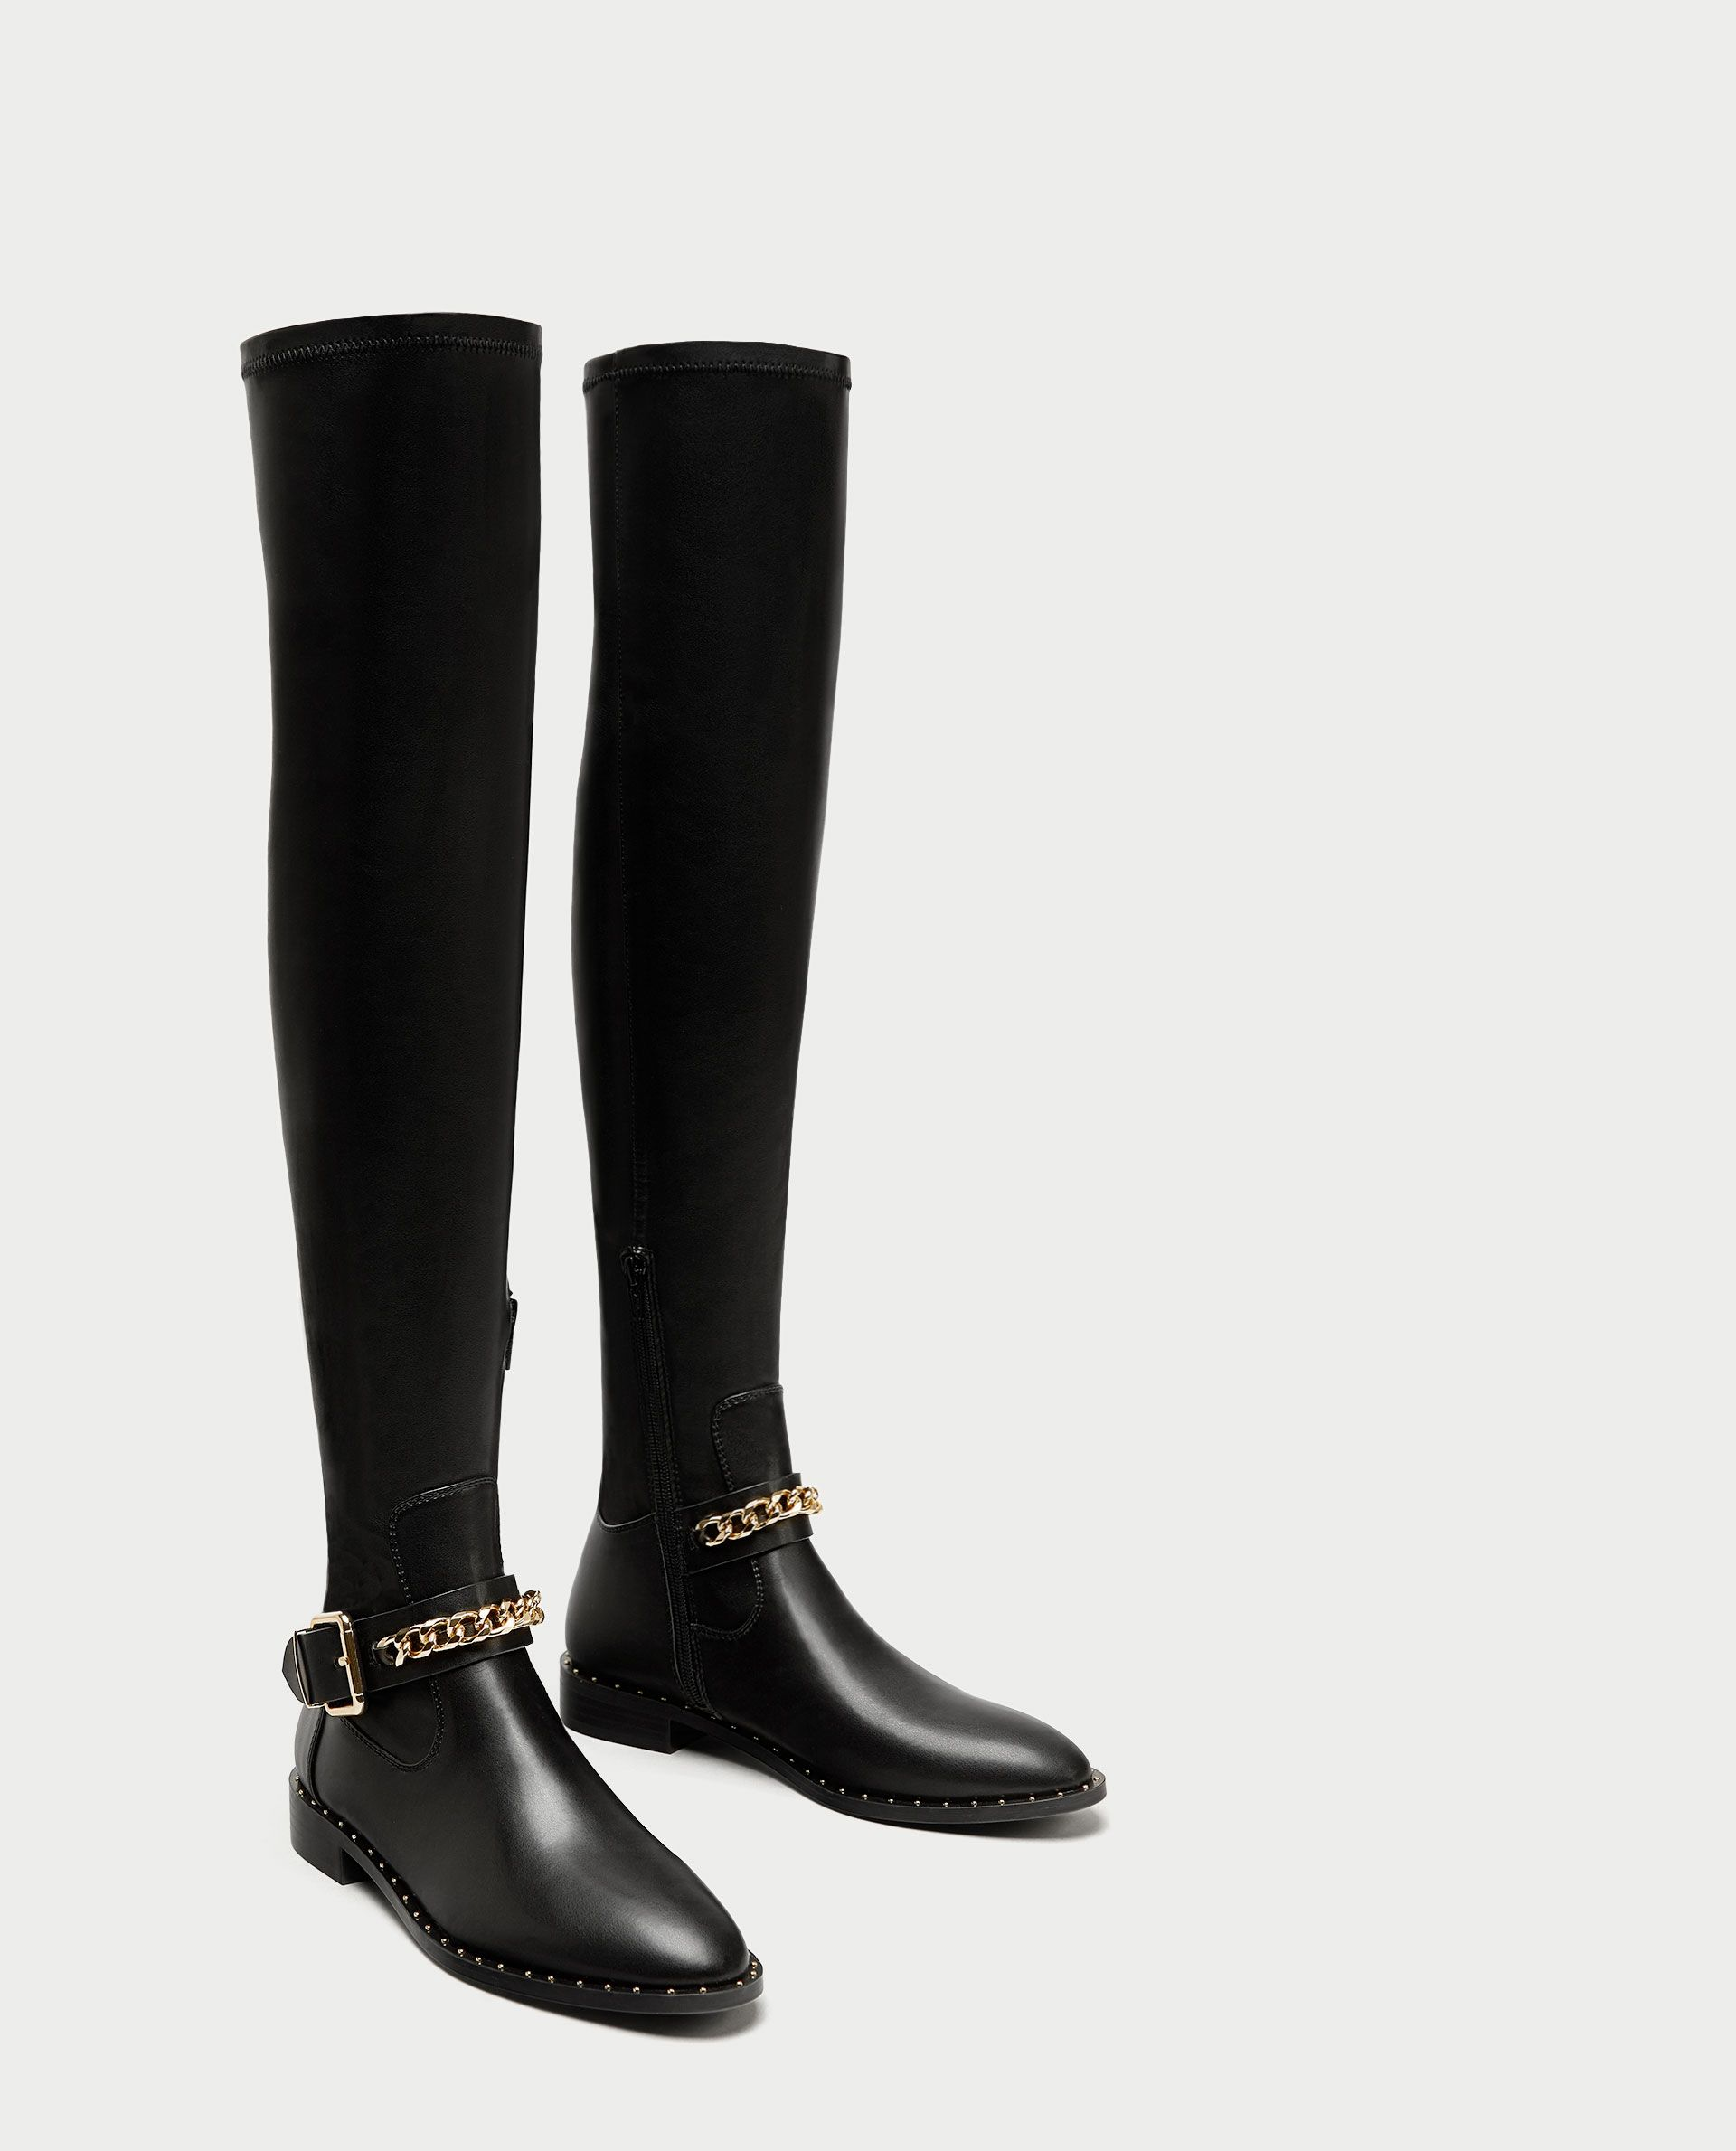 24278cfeb98 ZARA - WOMAN - FLAT OVER-THE-KNEE BOOTS WITH CHAIN DETAIL